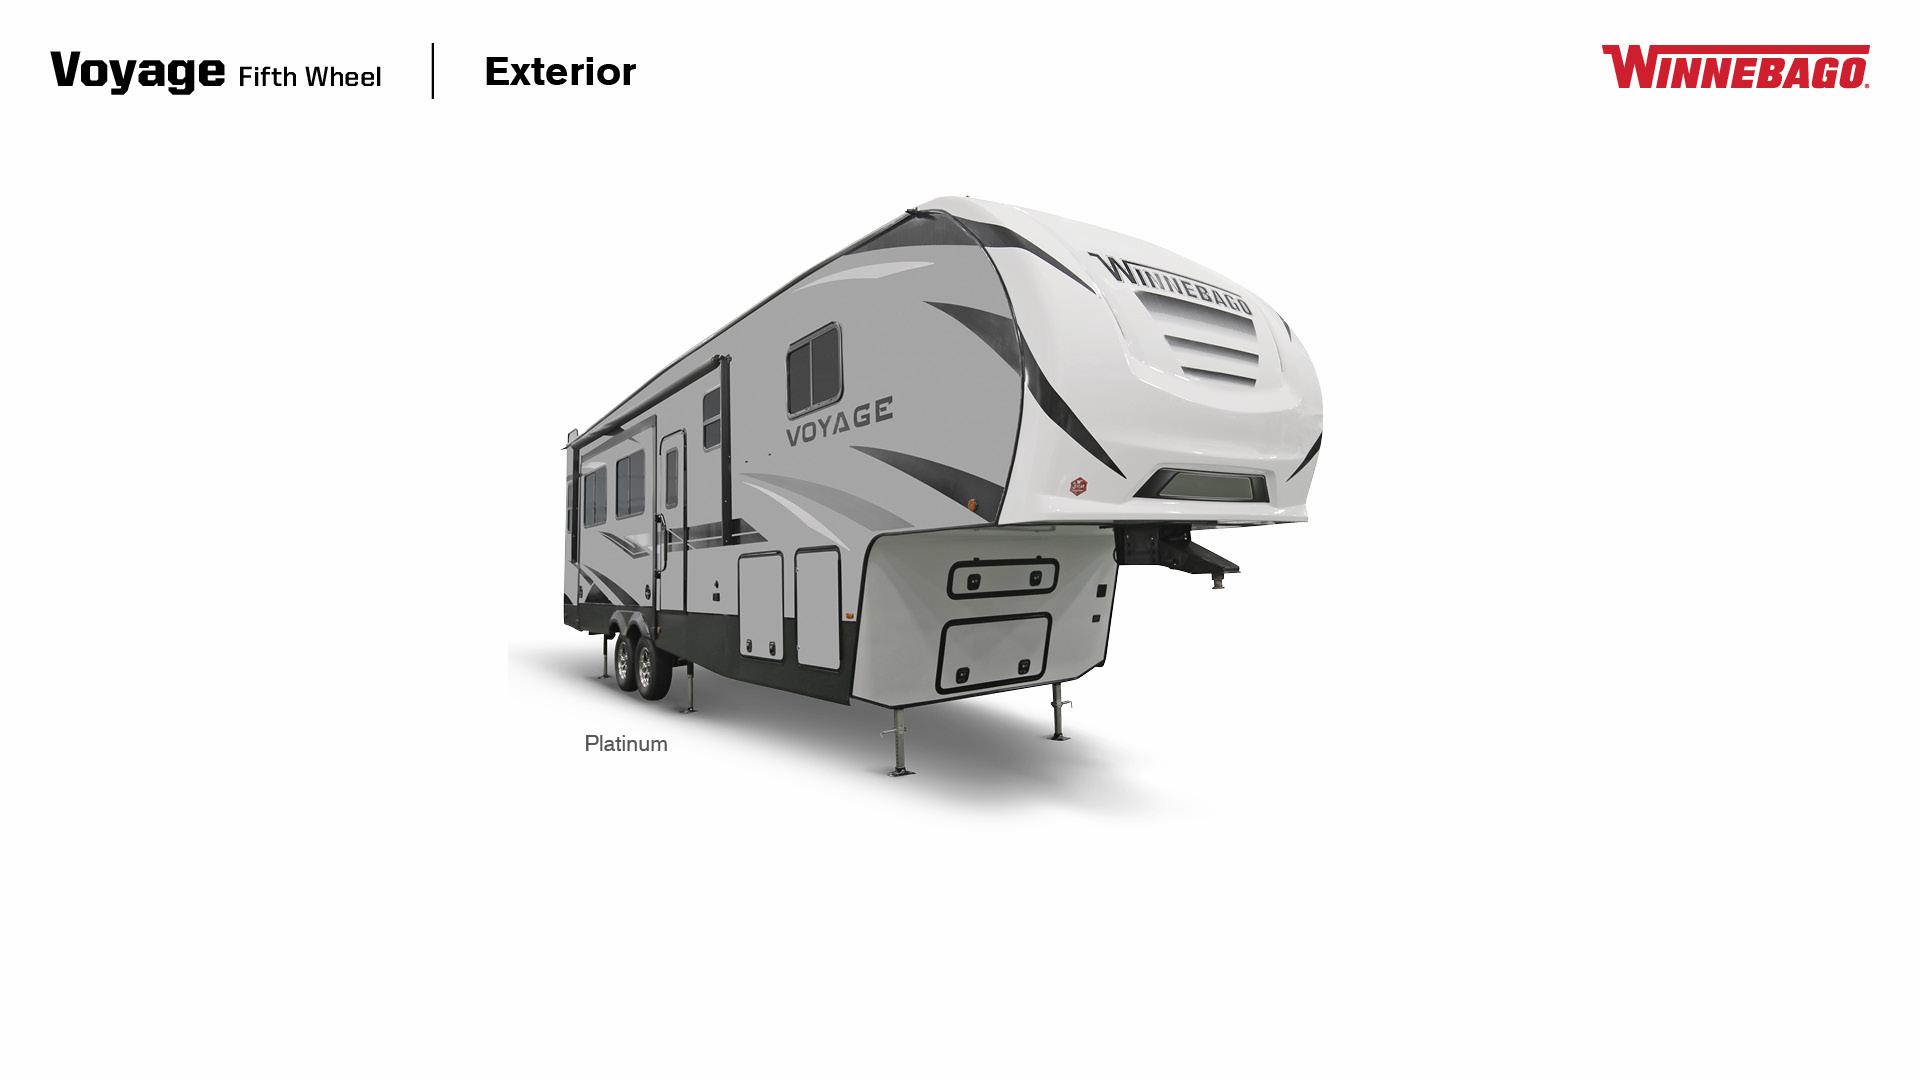 Winnebago Voyage Fifth Wheel exterior in Platinum, 3/4 Side view